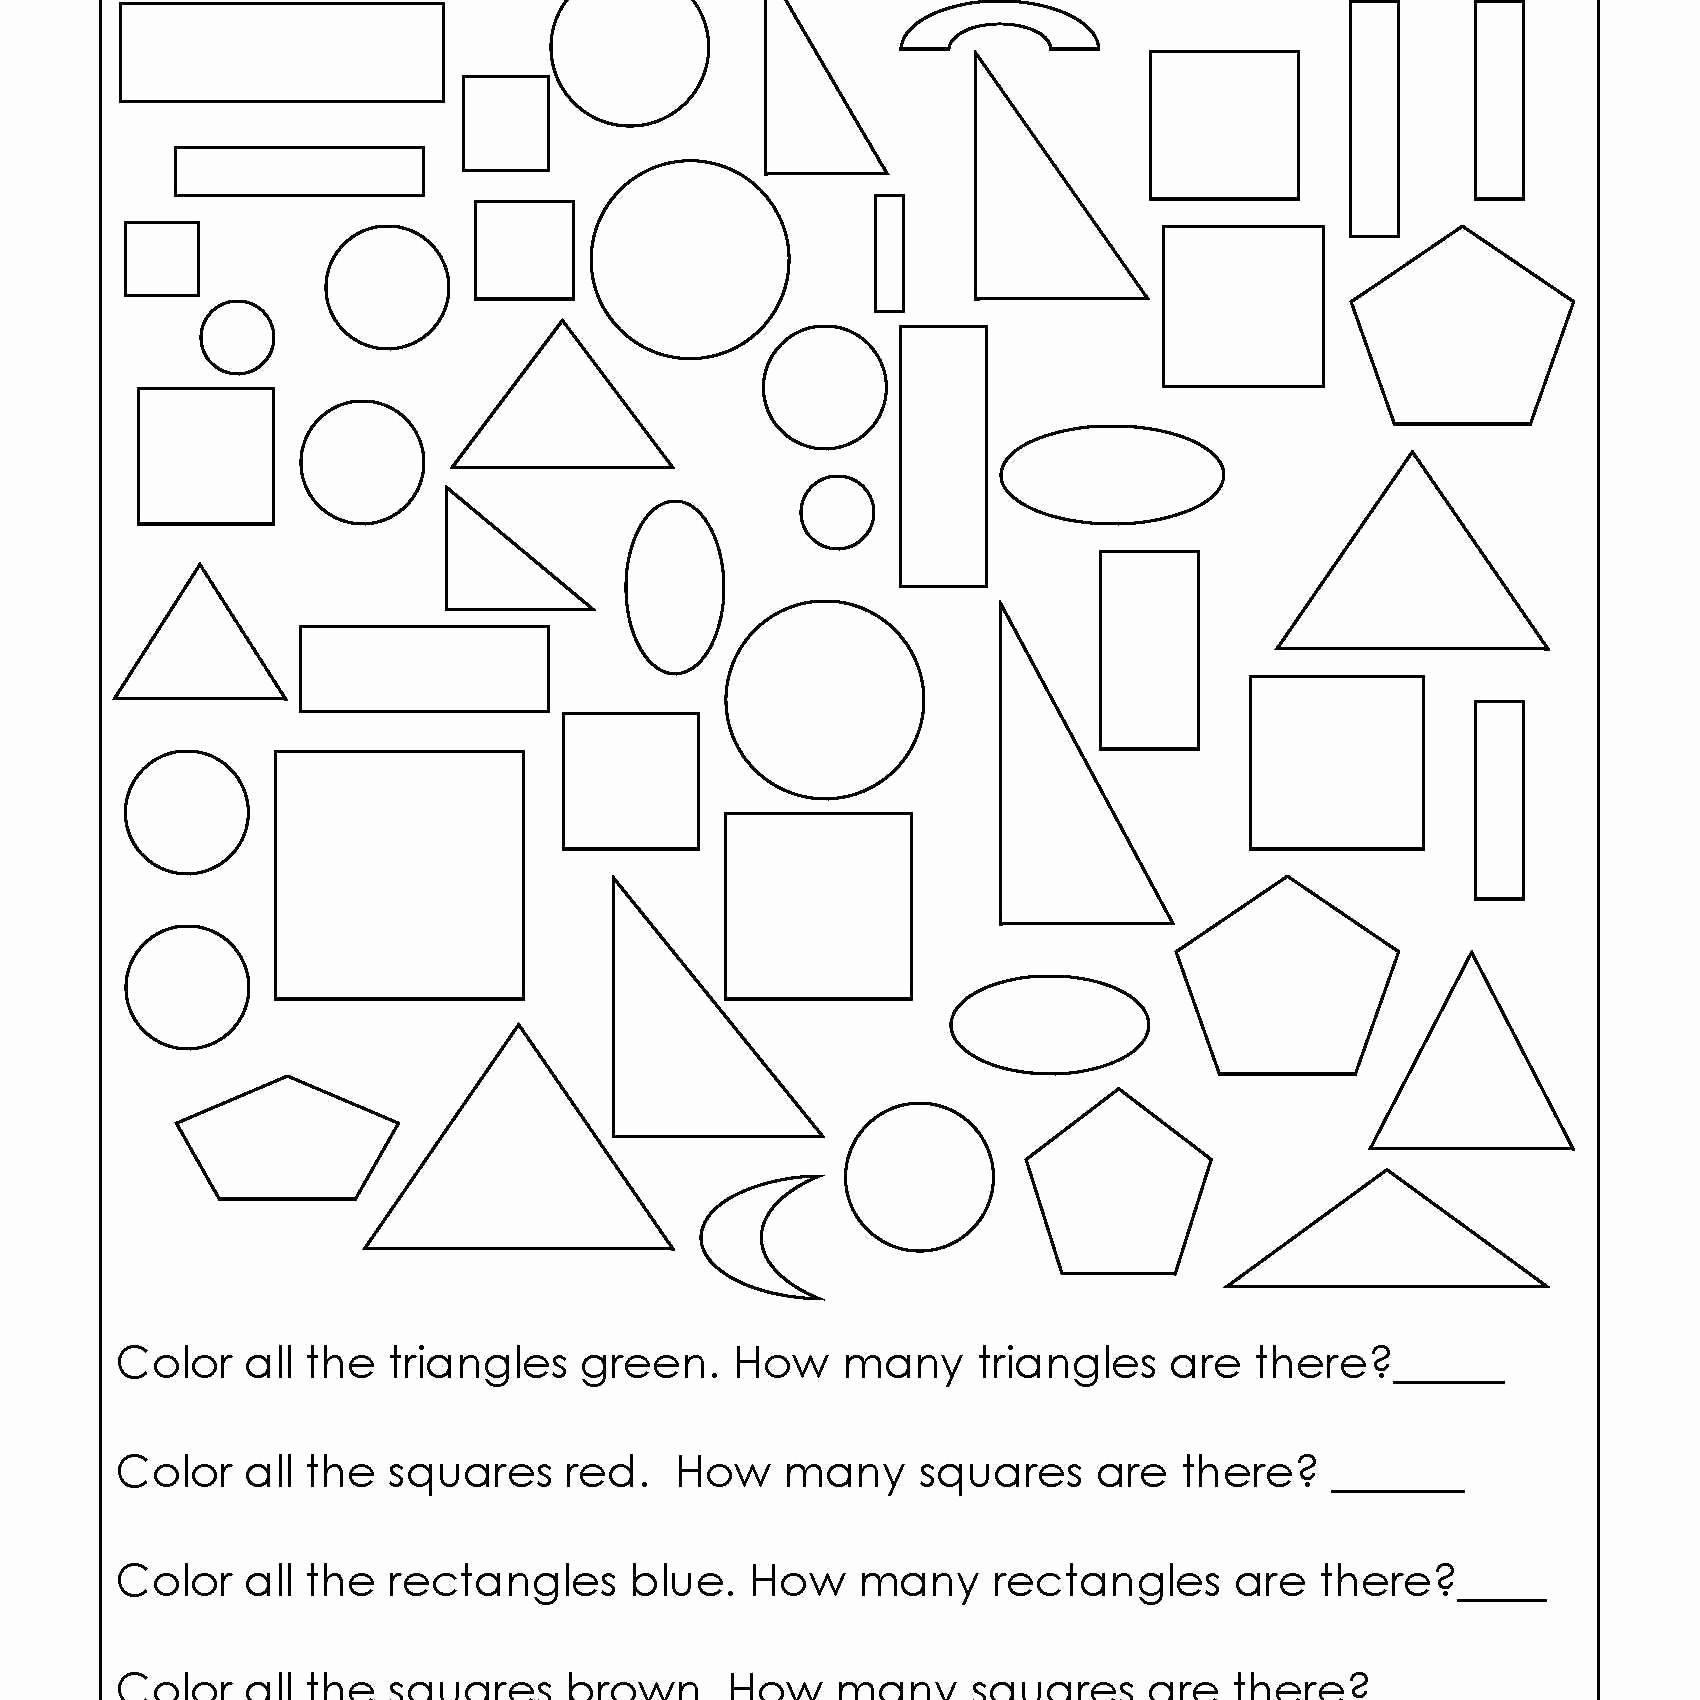 Coloring Activities For Grade 1 Unique Algebra Coloring